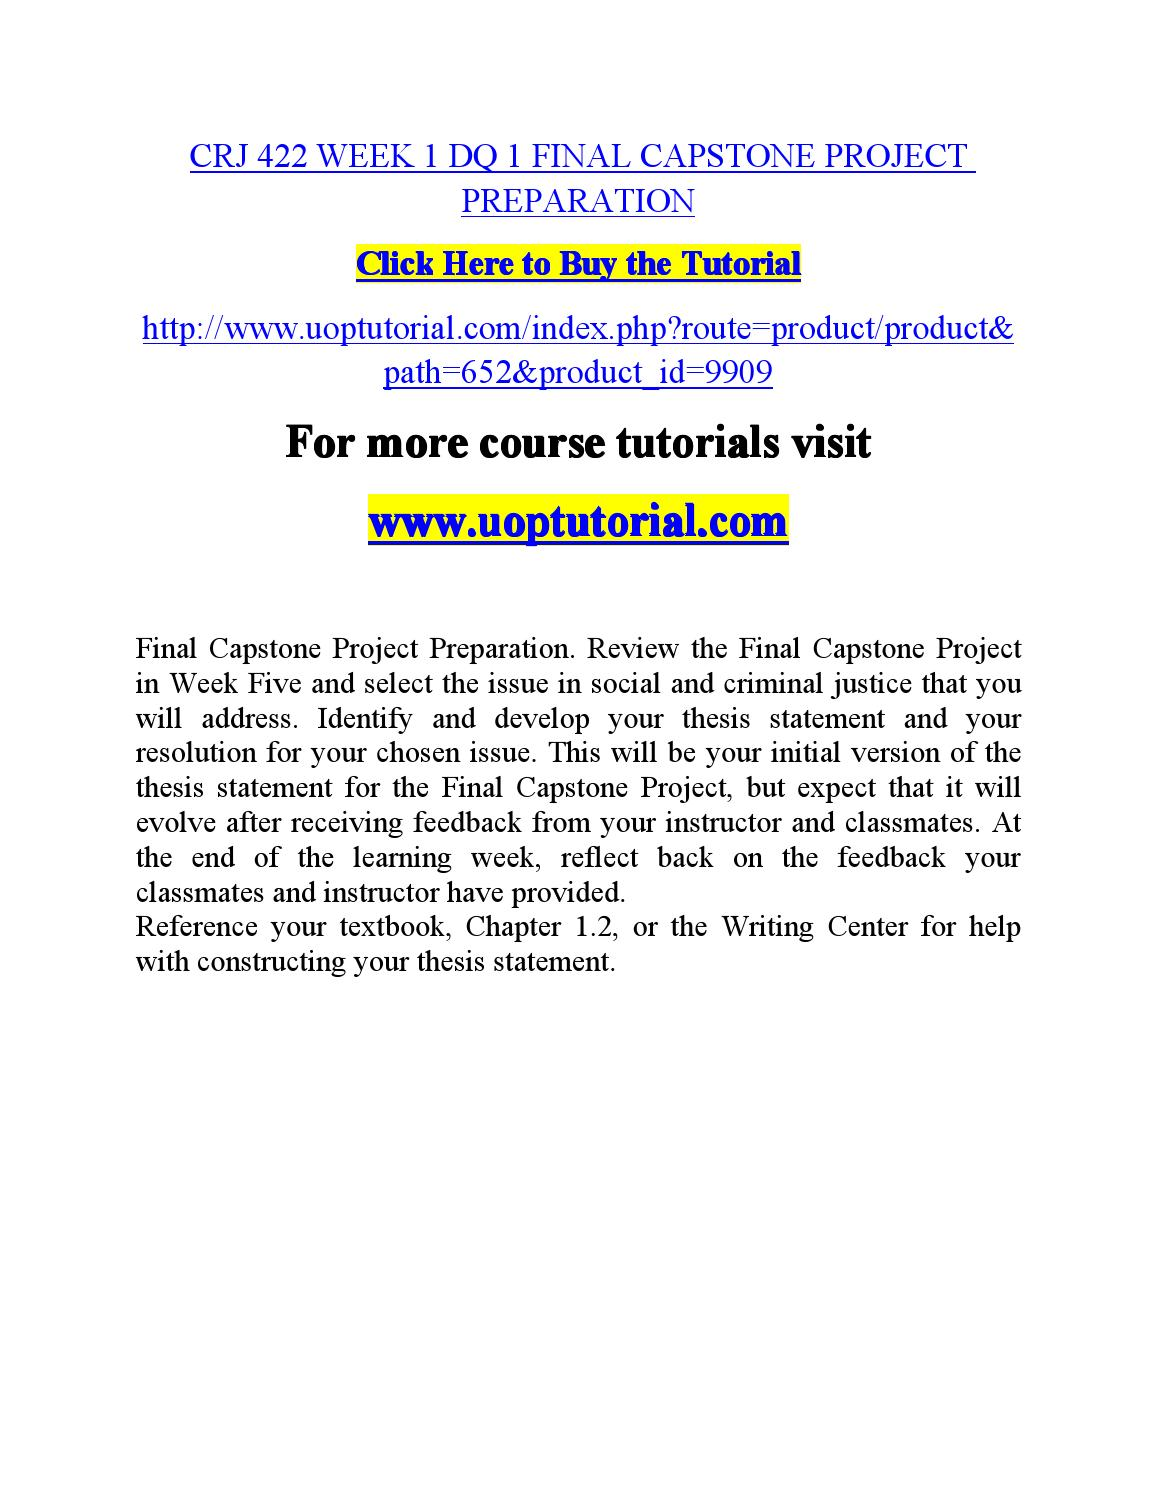 thesis preparation course Nr 699 001 - spring 2018 - master's thesis preparation course description for students who have completed all credit hour requirements and full-time enrollment for the master's degree and are writing and defending their thesis.